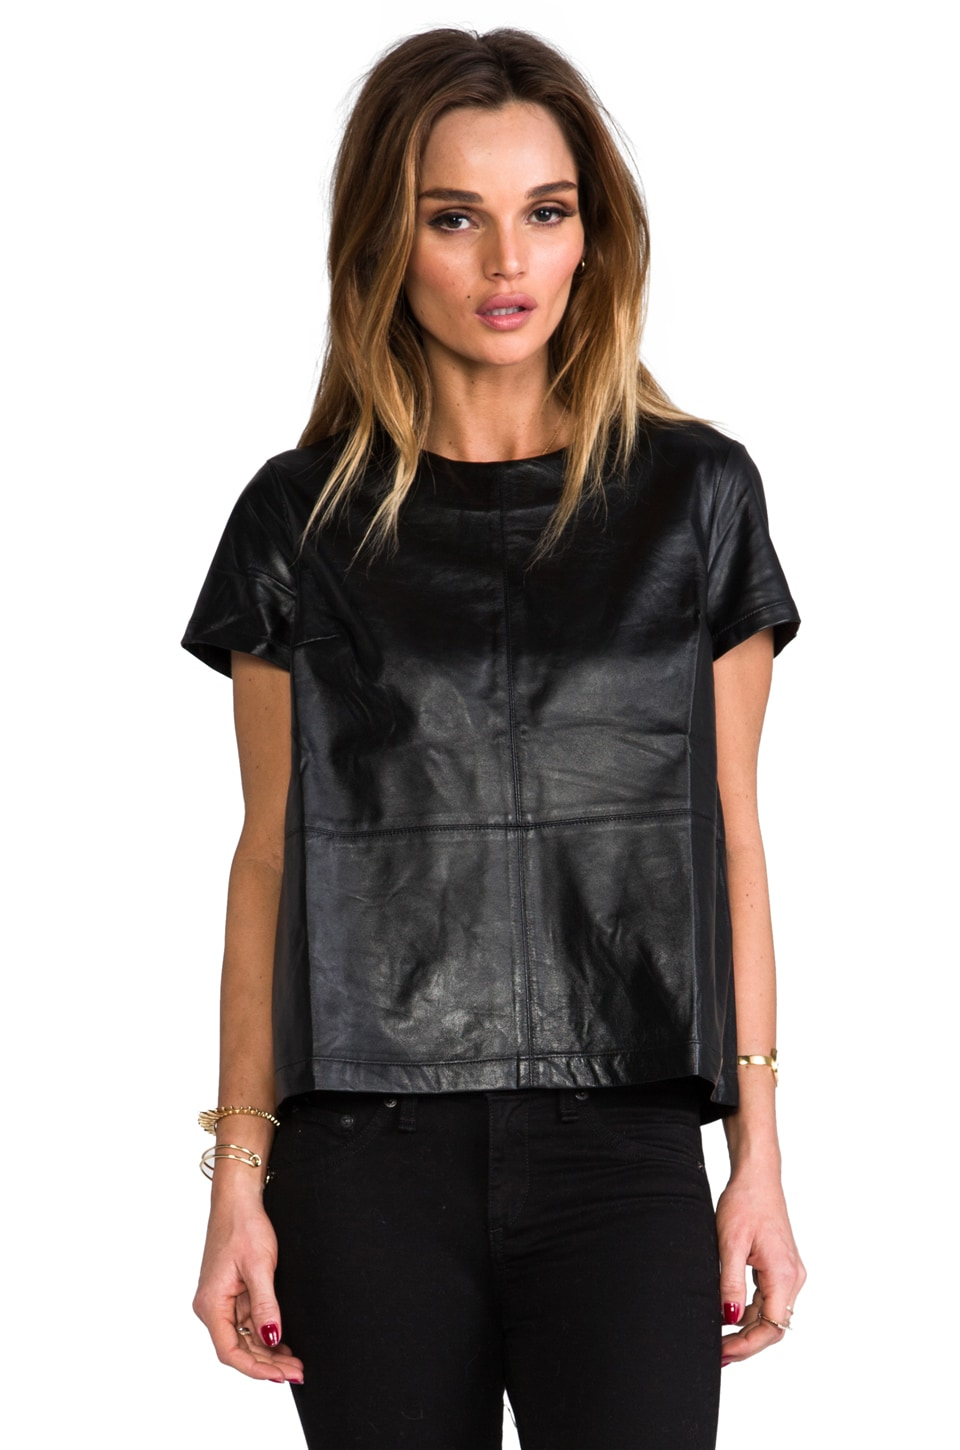 Funktional Atomic Leather Panel Top in Black